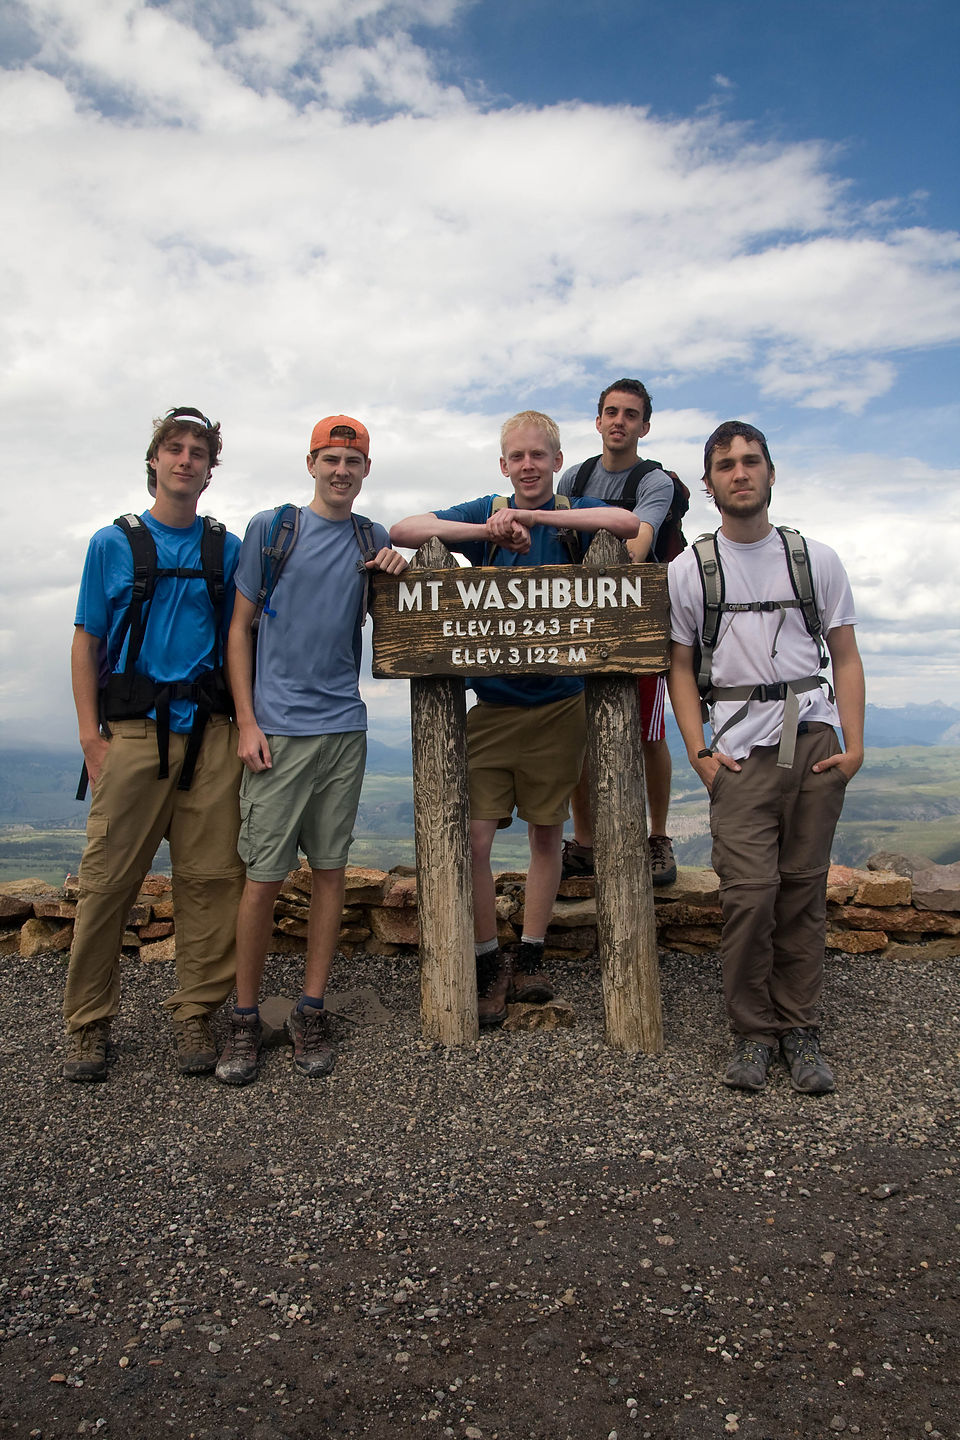 Group Picture on Mount Washburn